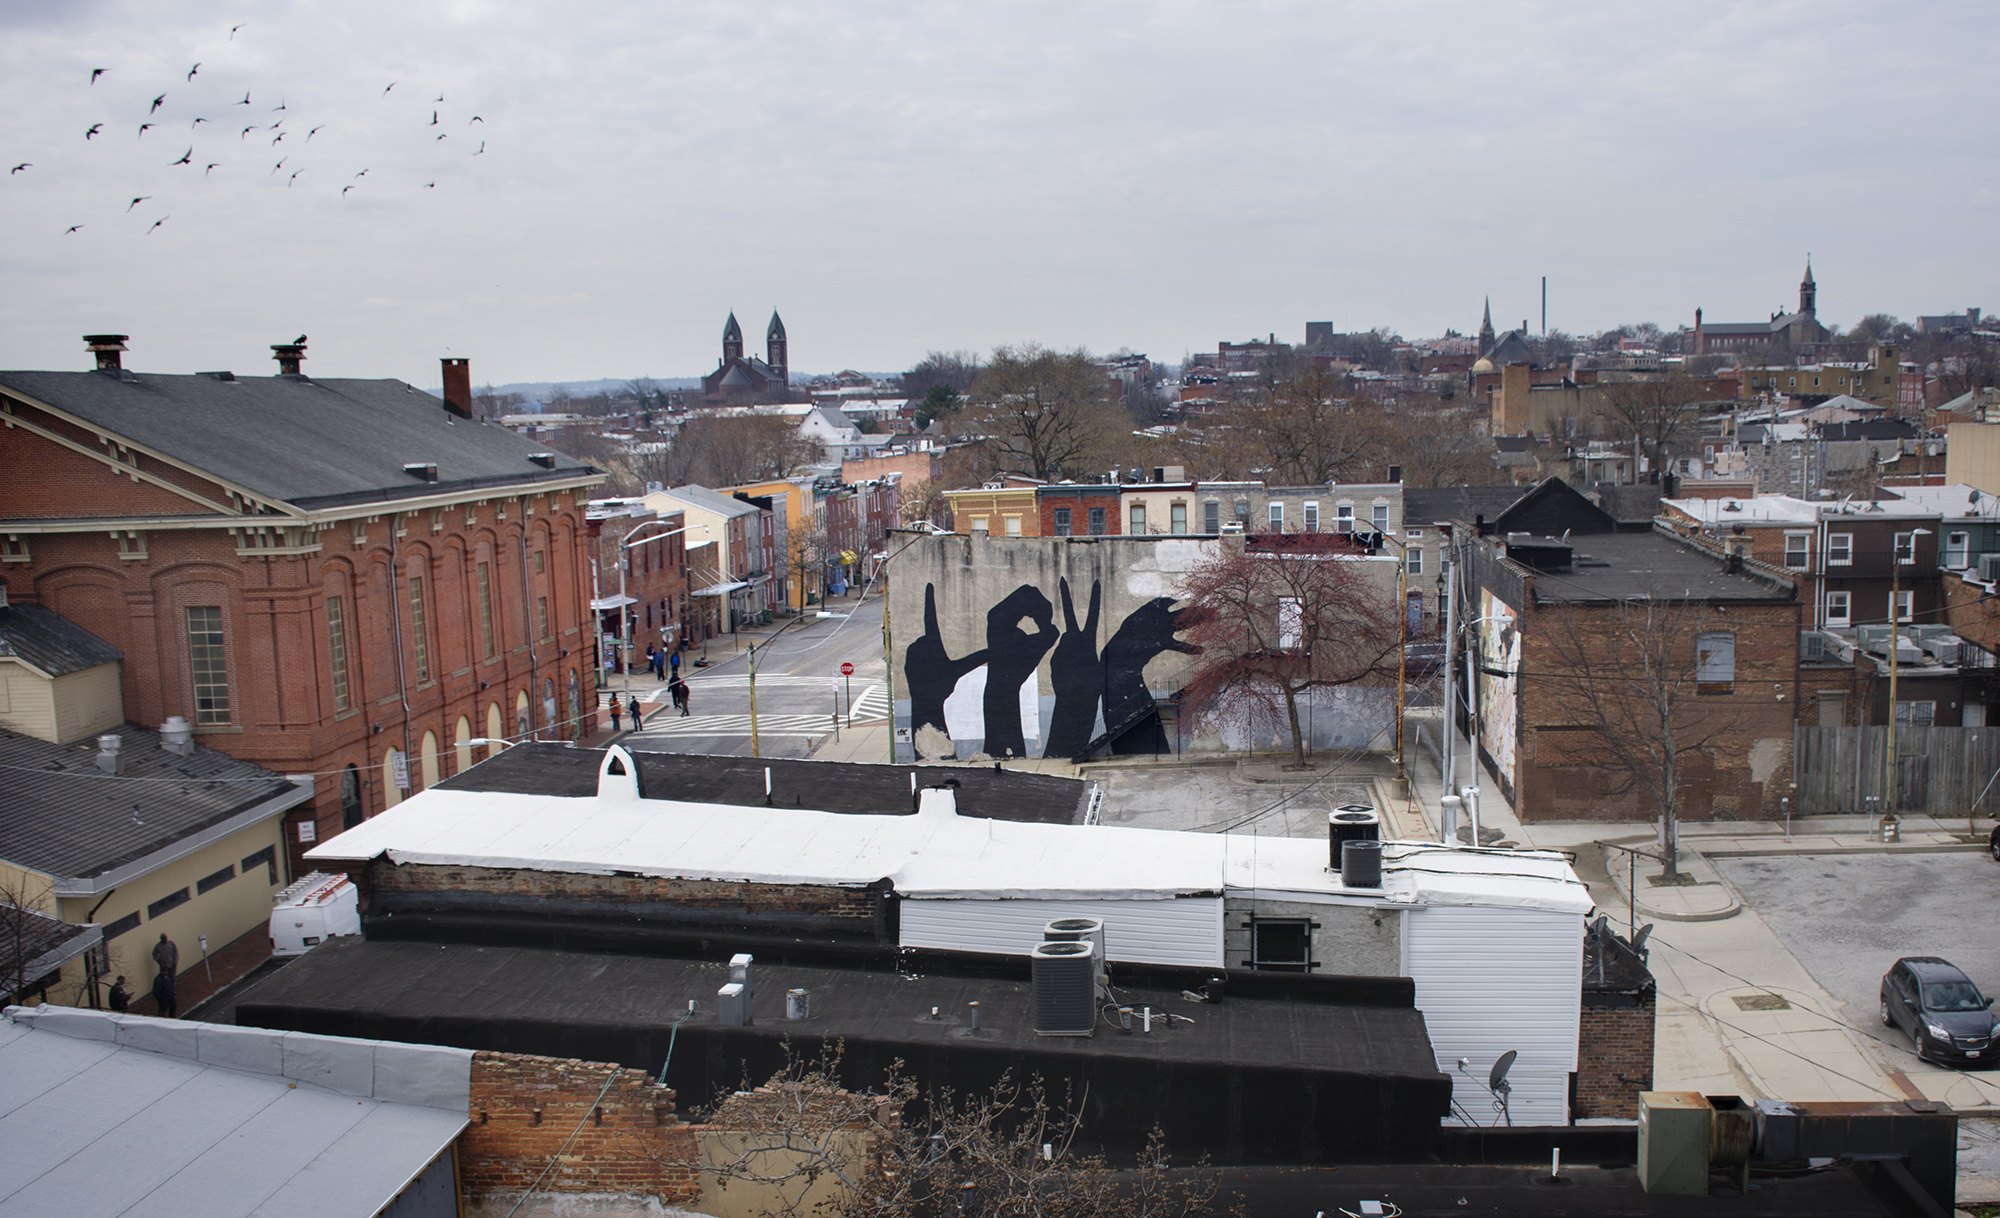 View of the Hollins Market neighborhood looking west from the rooftop of 1100 Hollins Street